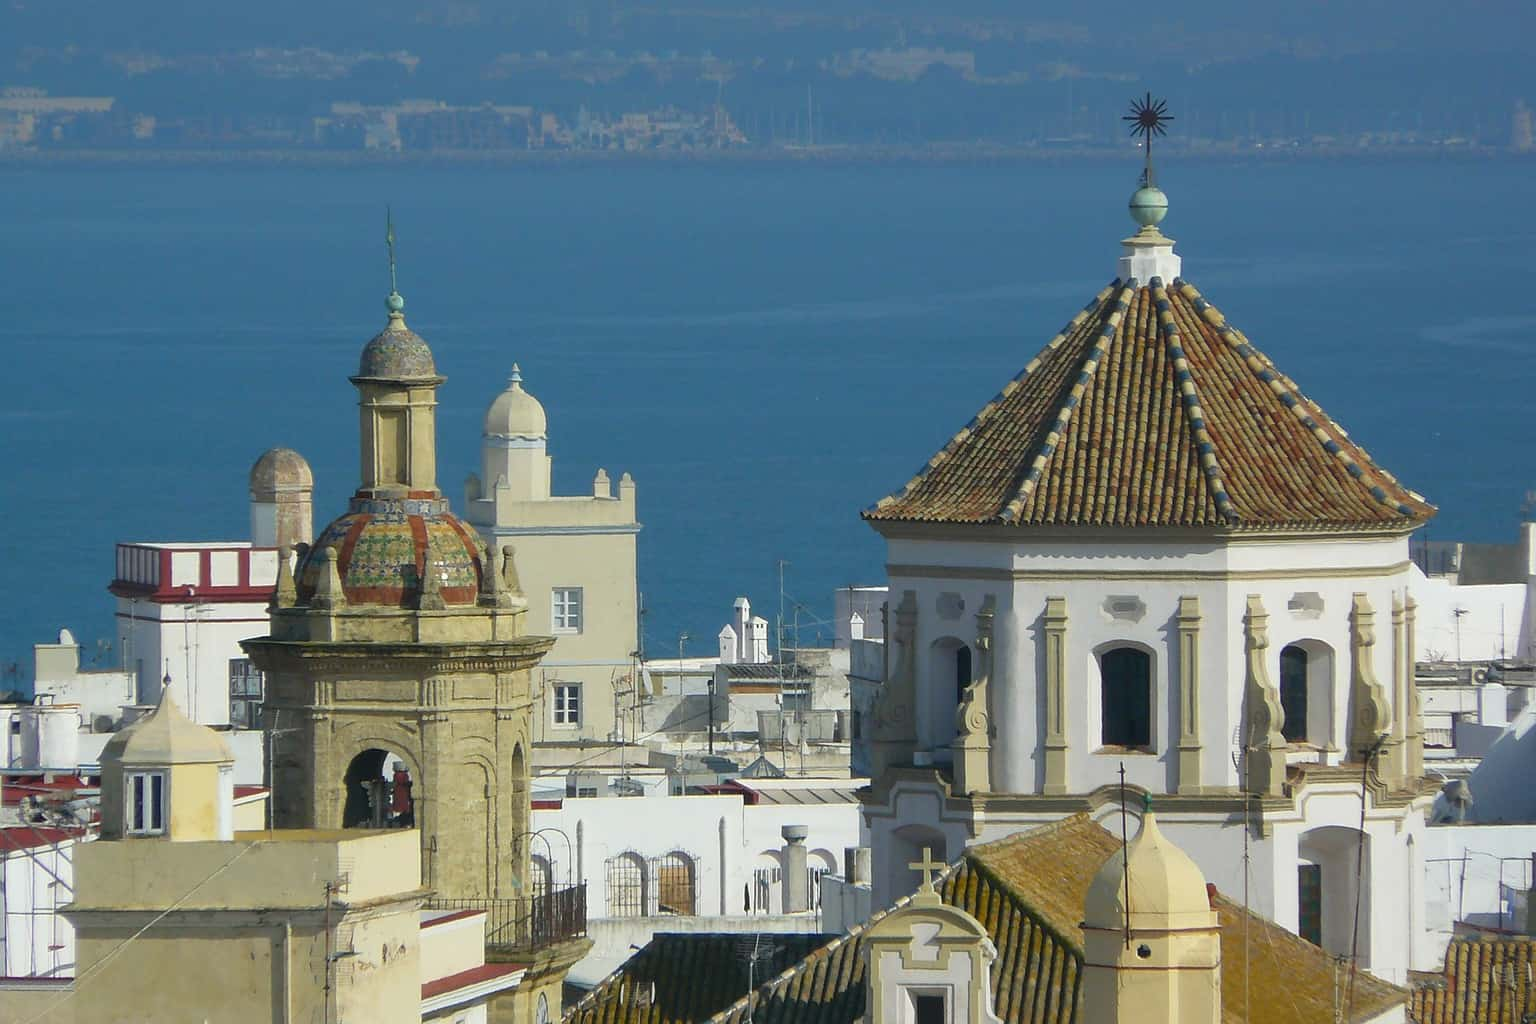 Some of the medieval buildings that dot the skyline of the seaside city of Cadiz, Spain.